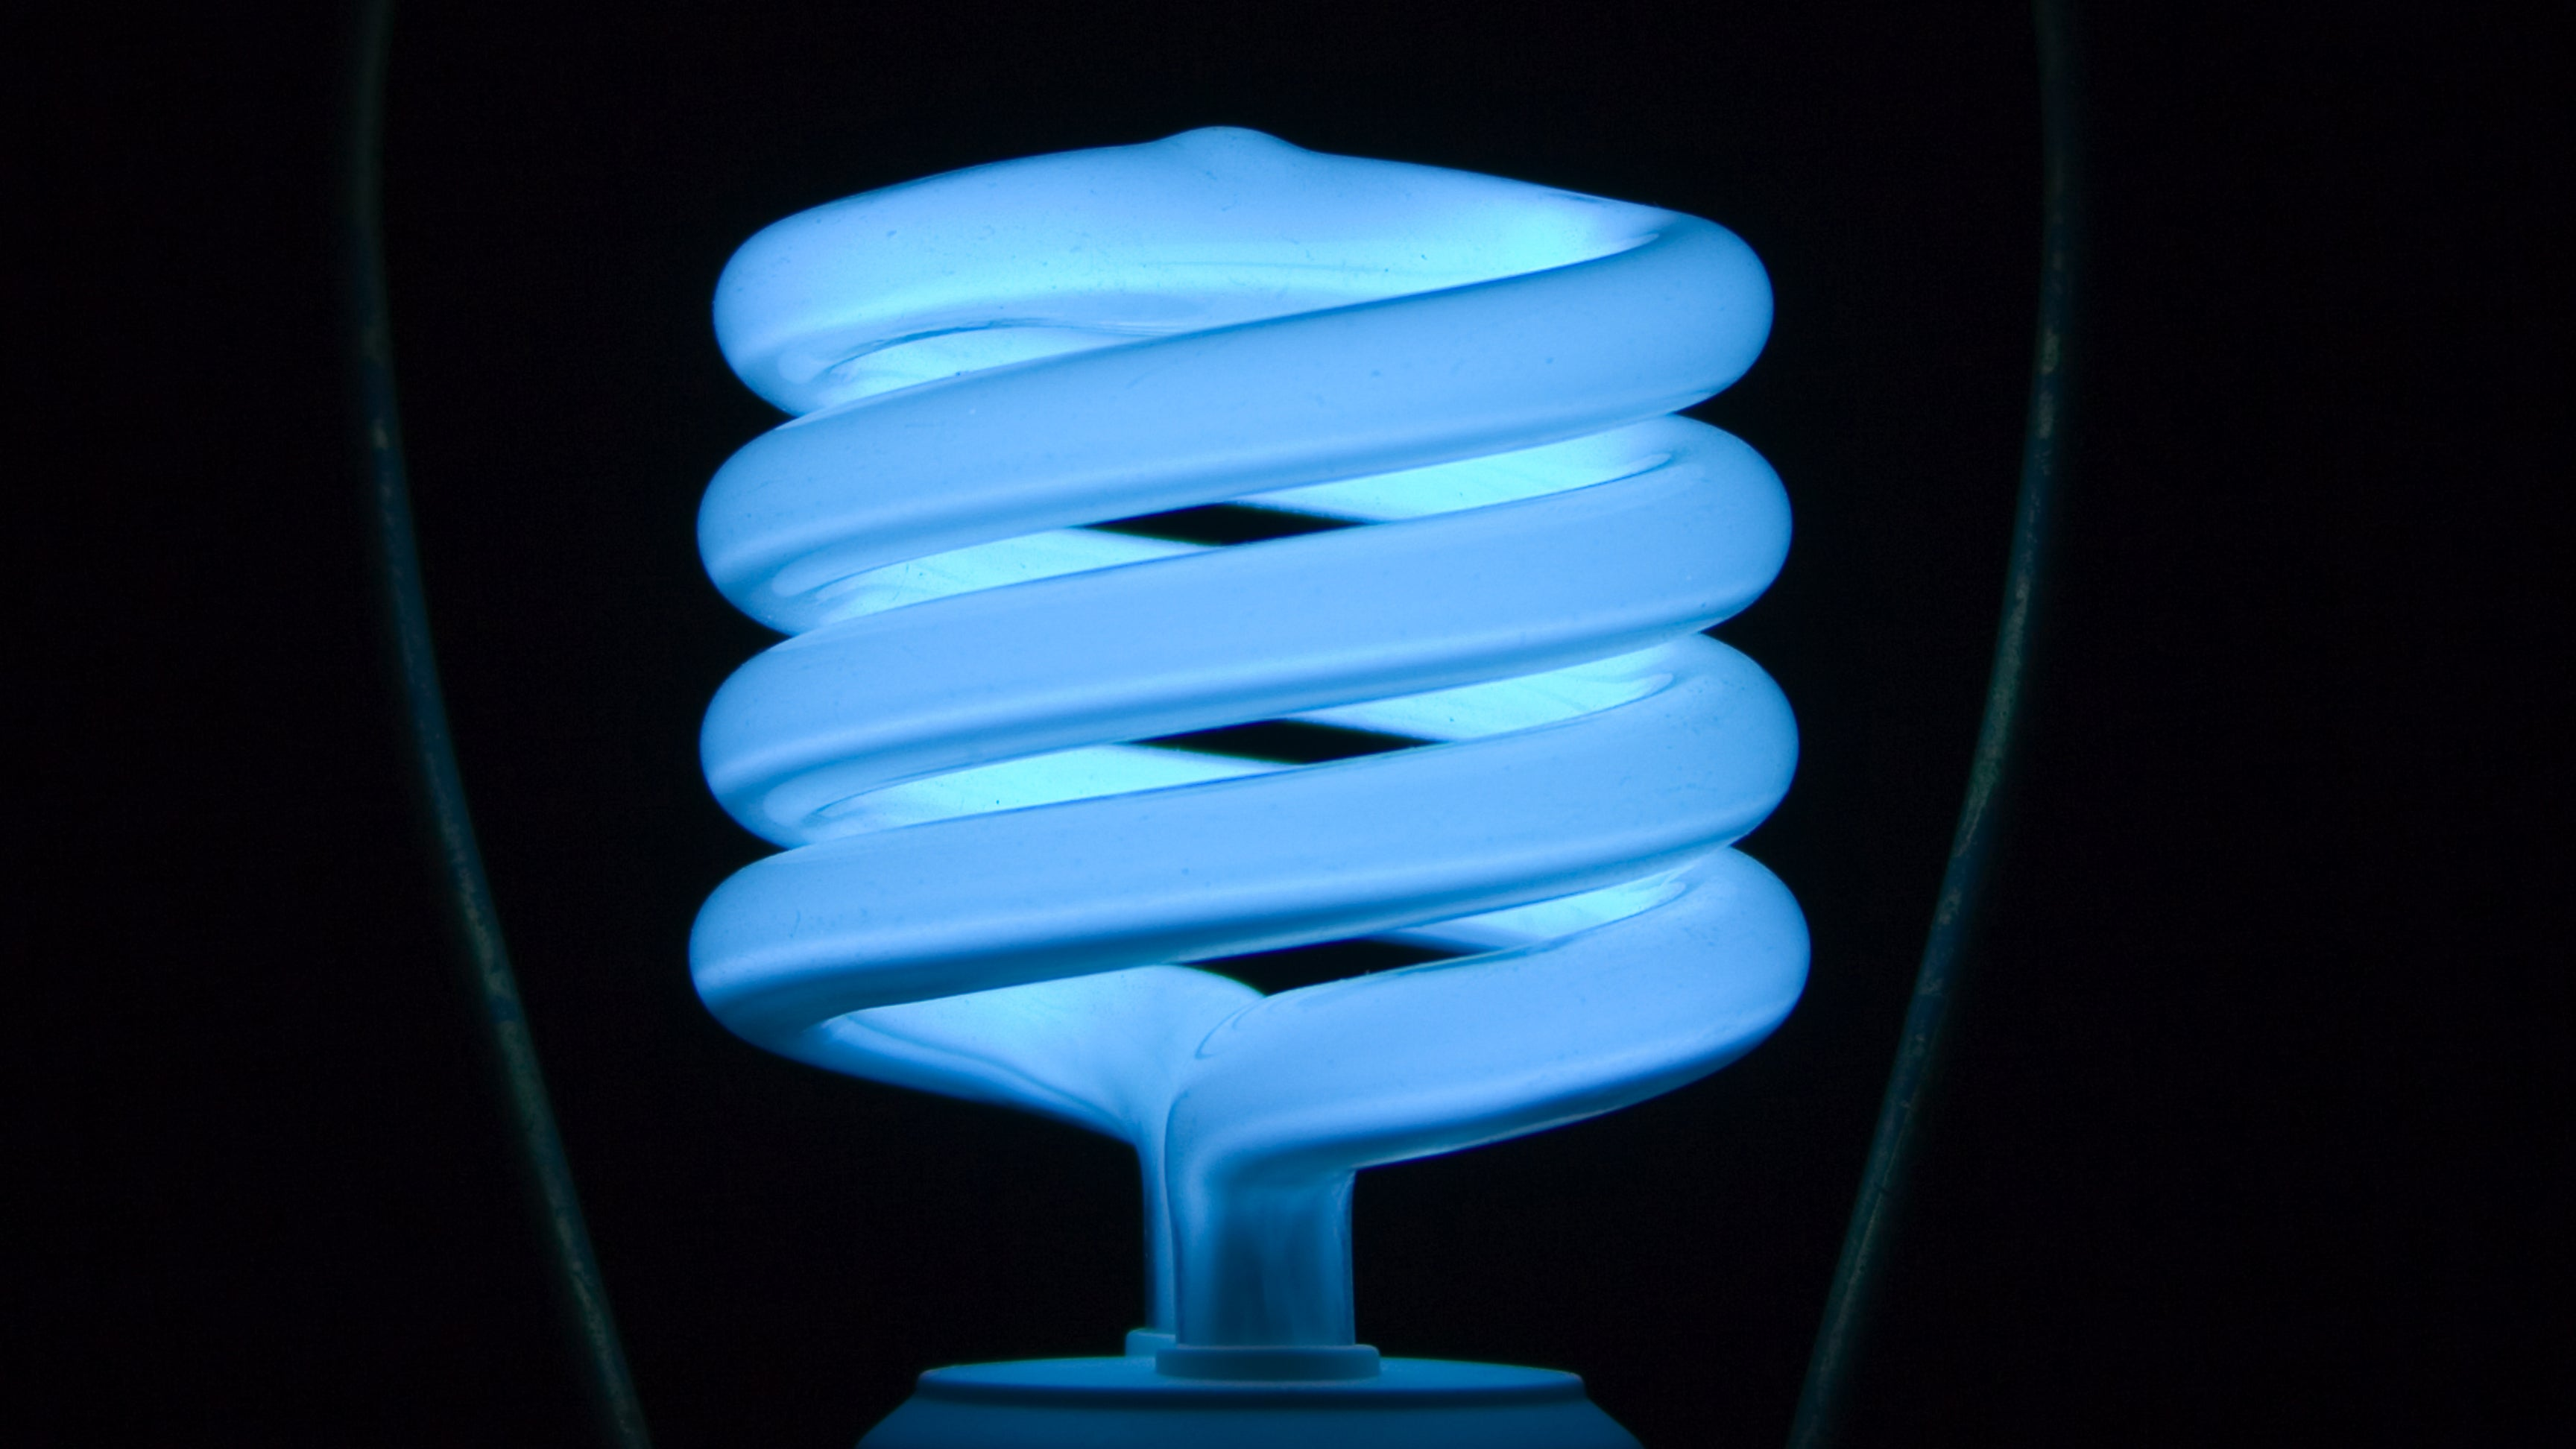 cfl general-electric leds lightbulbs smart-home